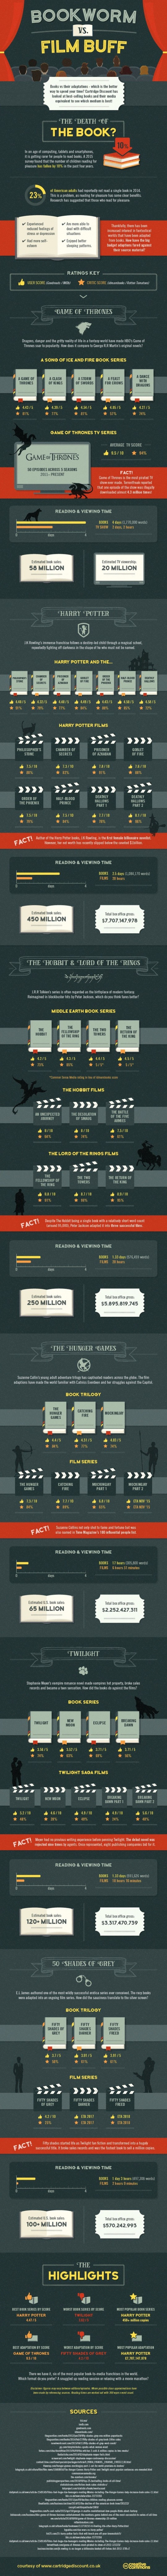 Books vs. their movie adaptations - a definitive guide #infographic